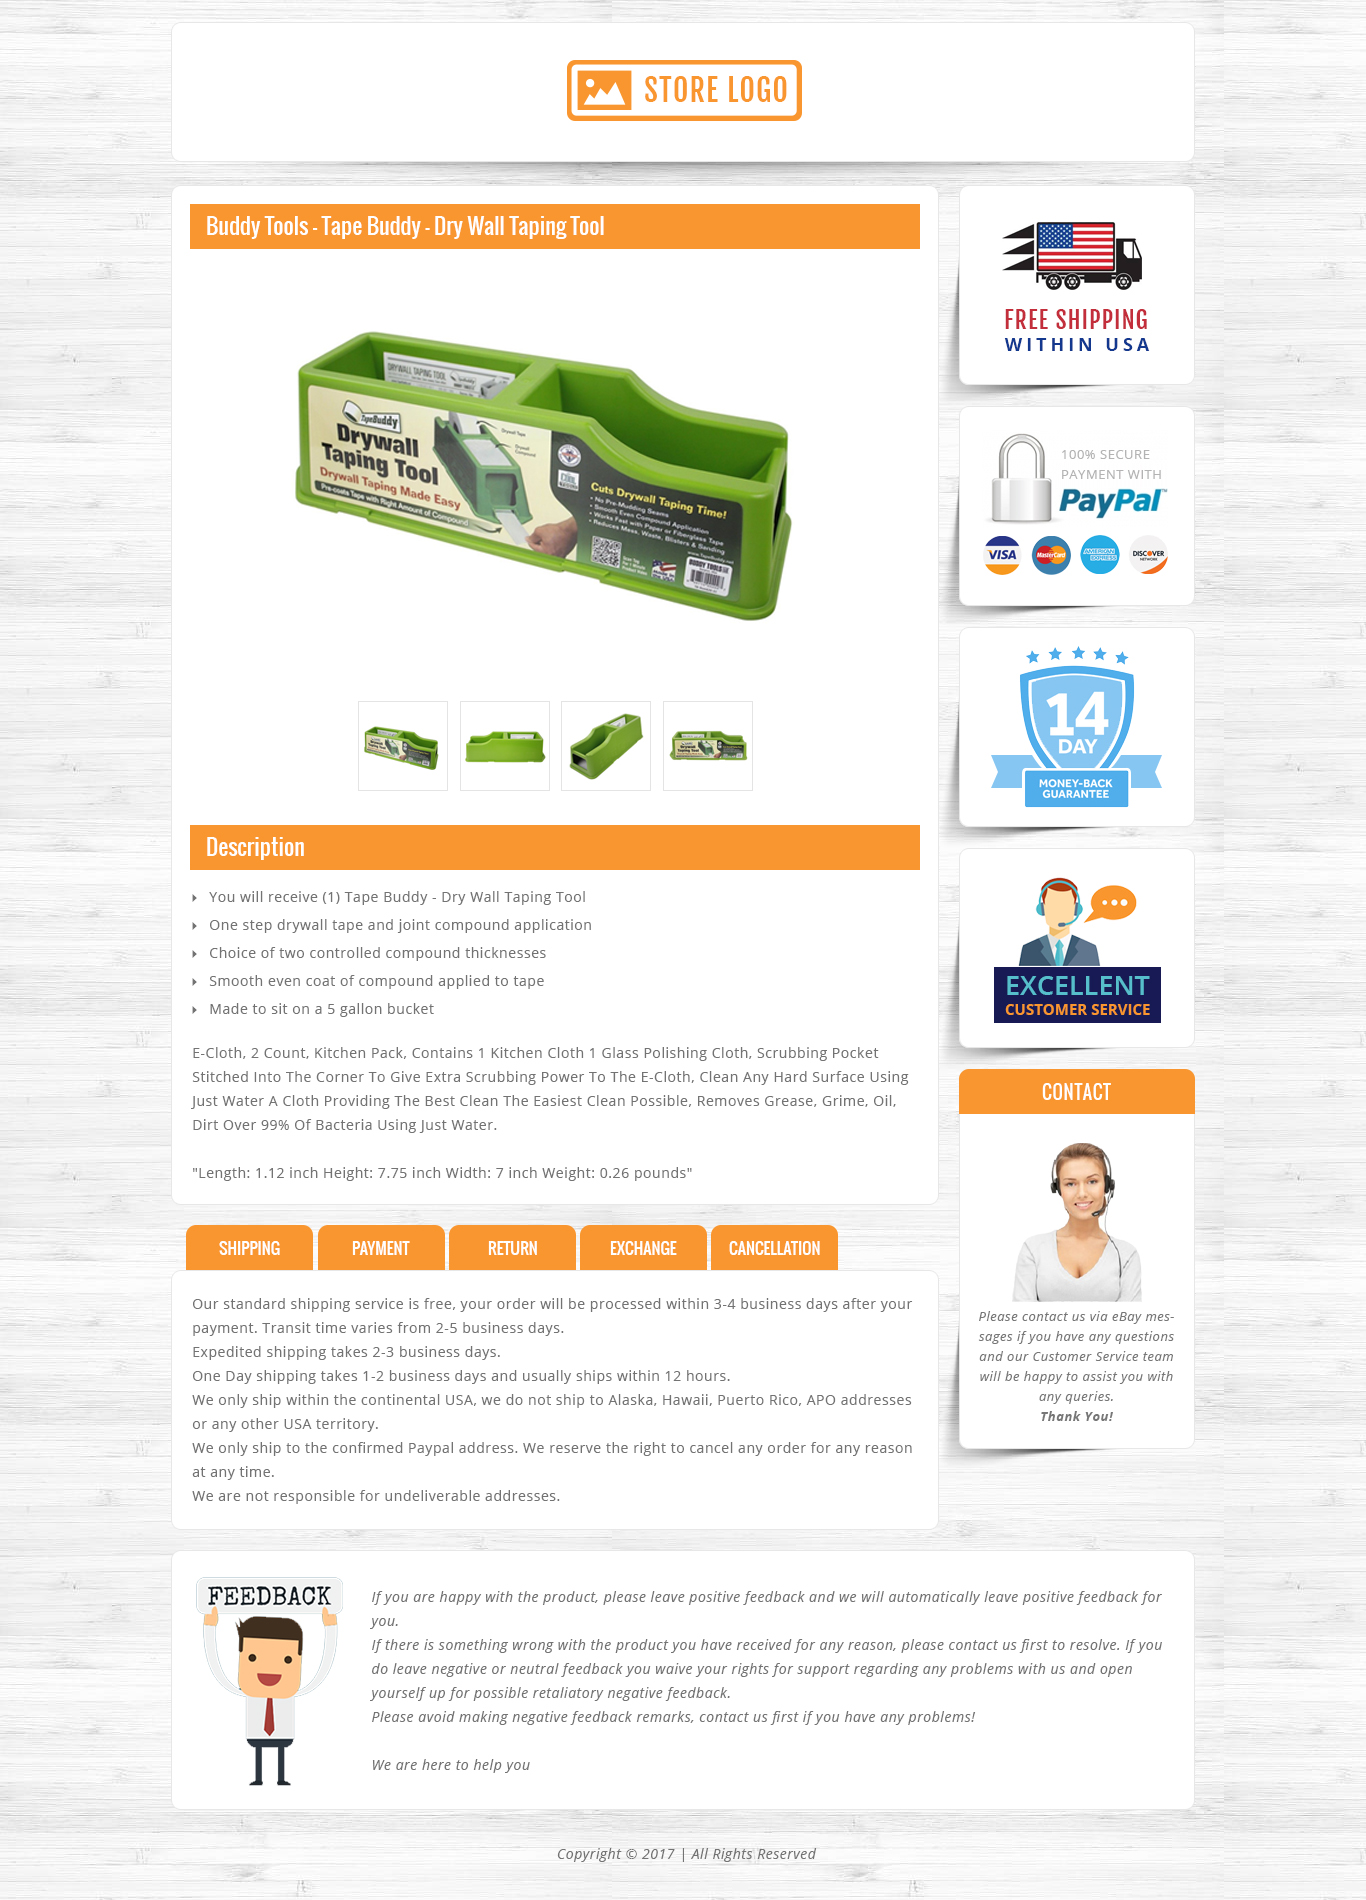 Hermosa plantilla de ebay gratis html inspiraci n for Free ebay templates html download